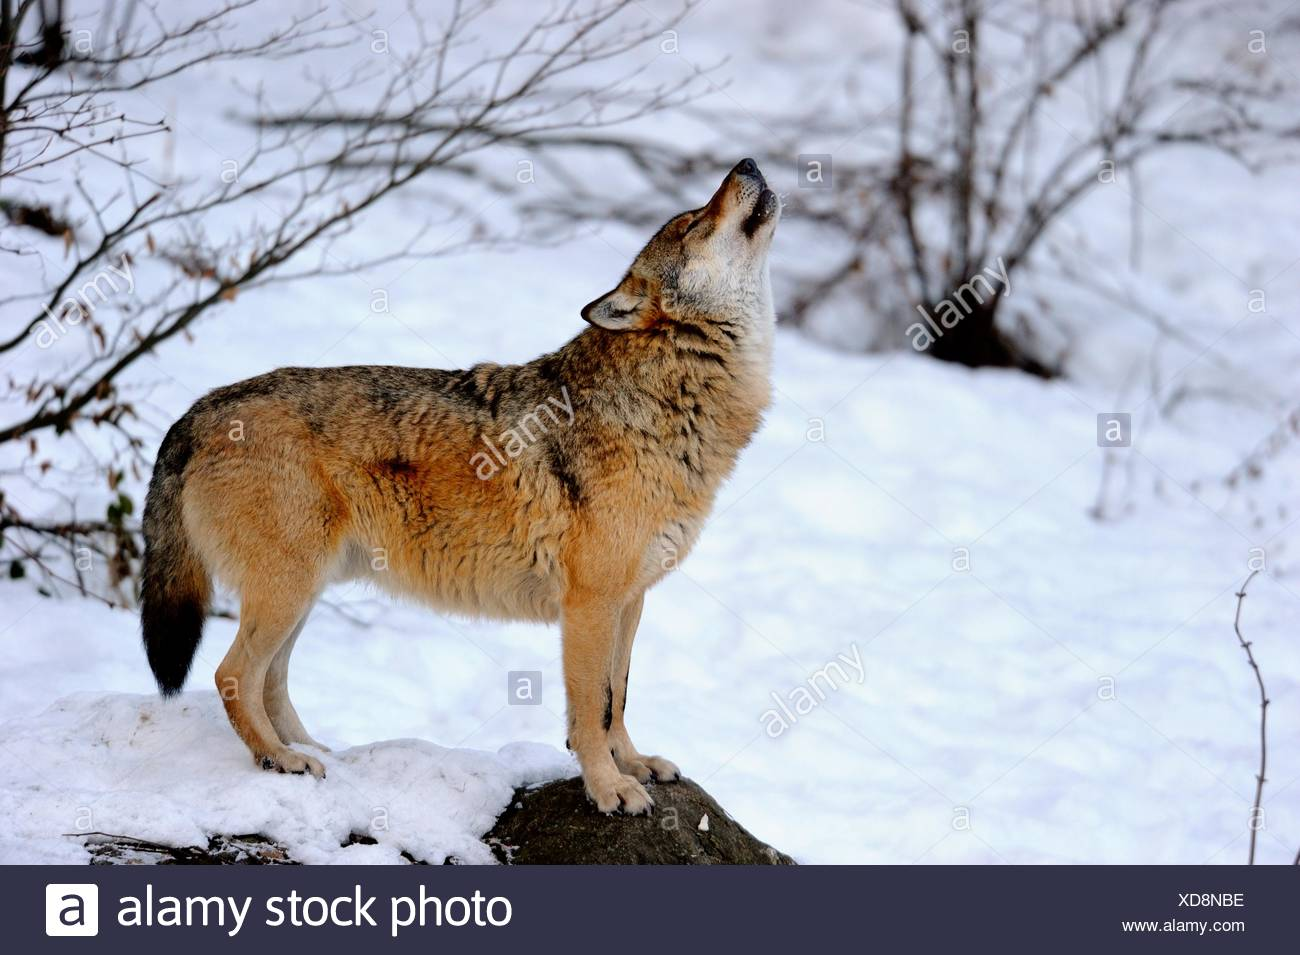 Howling Wolf Stock Photos & Howling Wolf Stock Images - Alamy